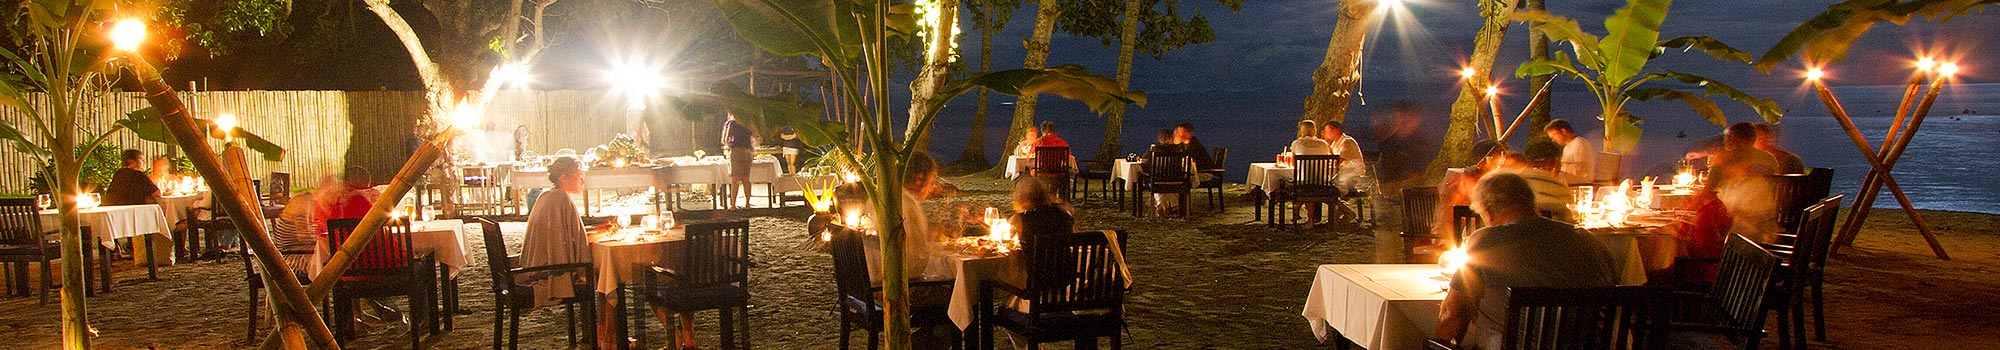 Weekly beach barbecue dining at Atmosphere in Dumaguete Philippines